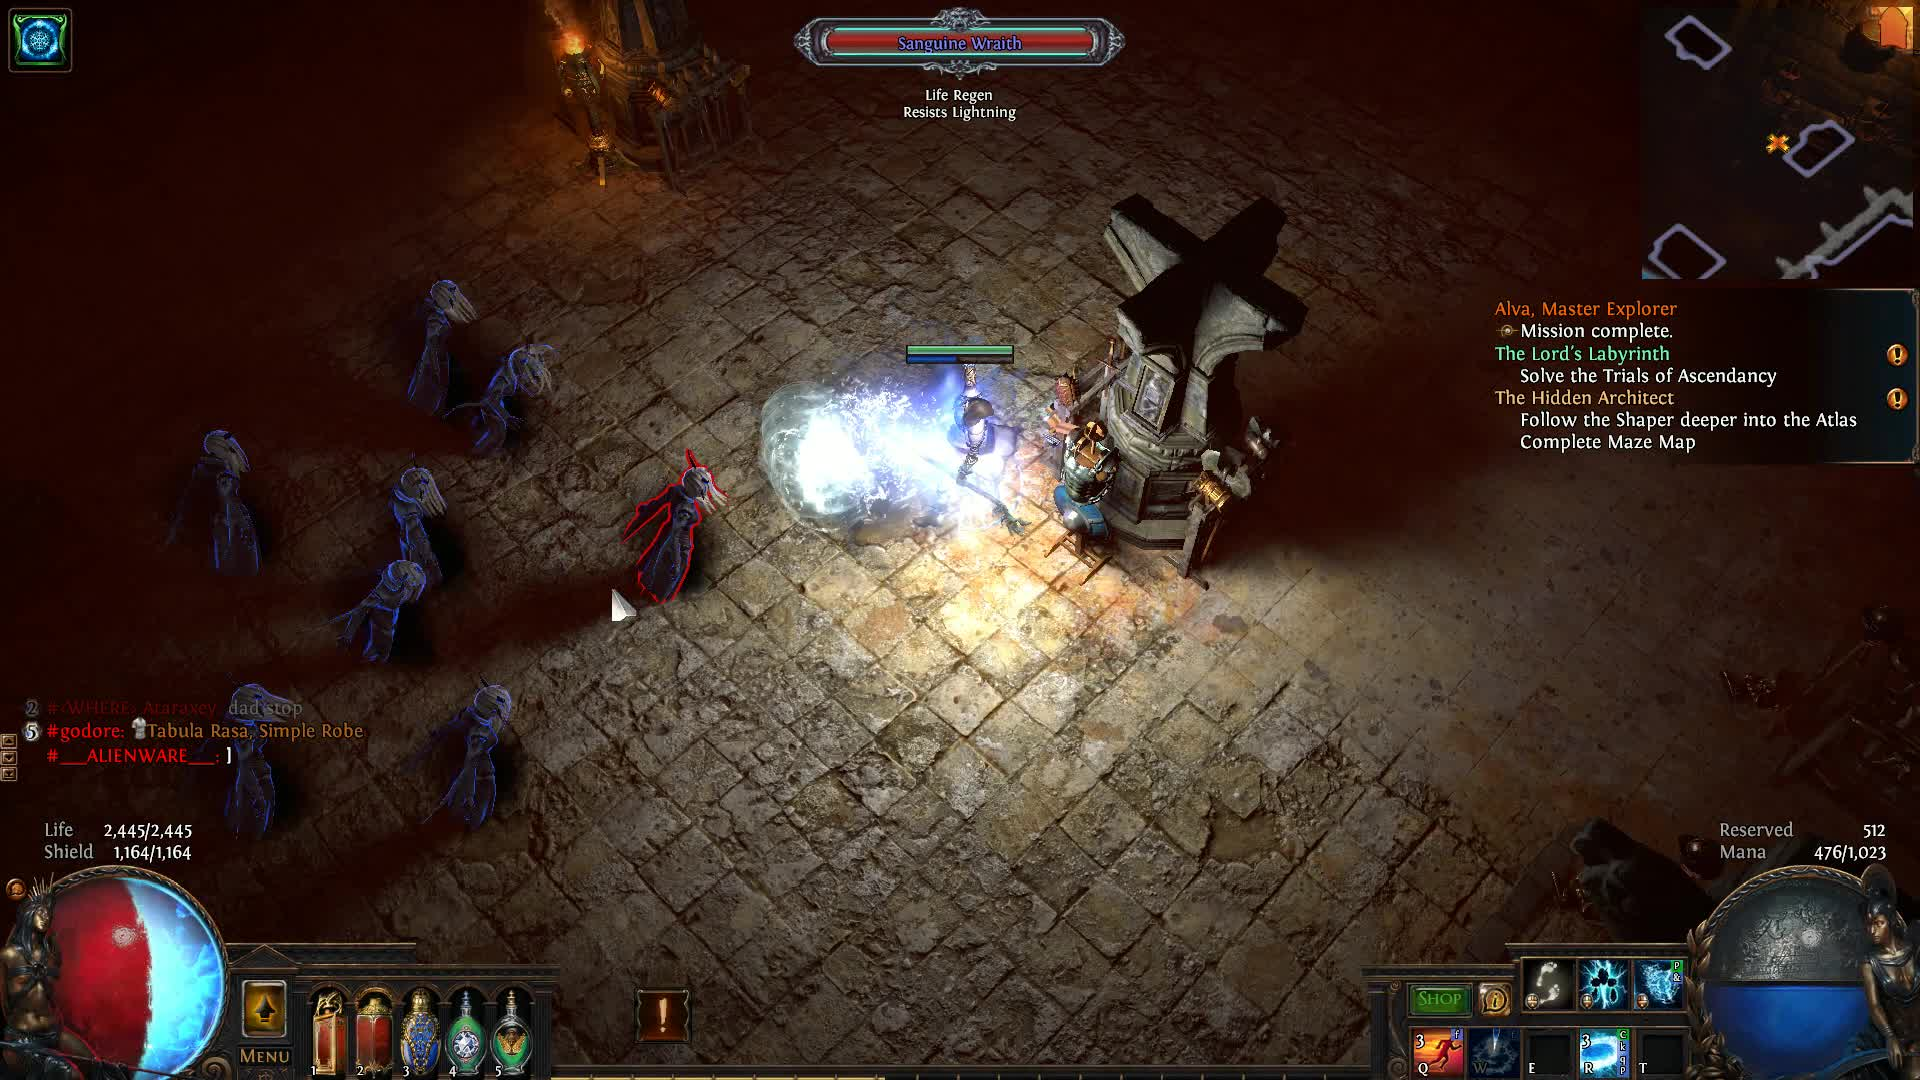 pathofexile, Path Of Exile 2019.03.09 - 22.51.53.08.DVR GIFs